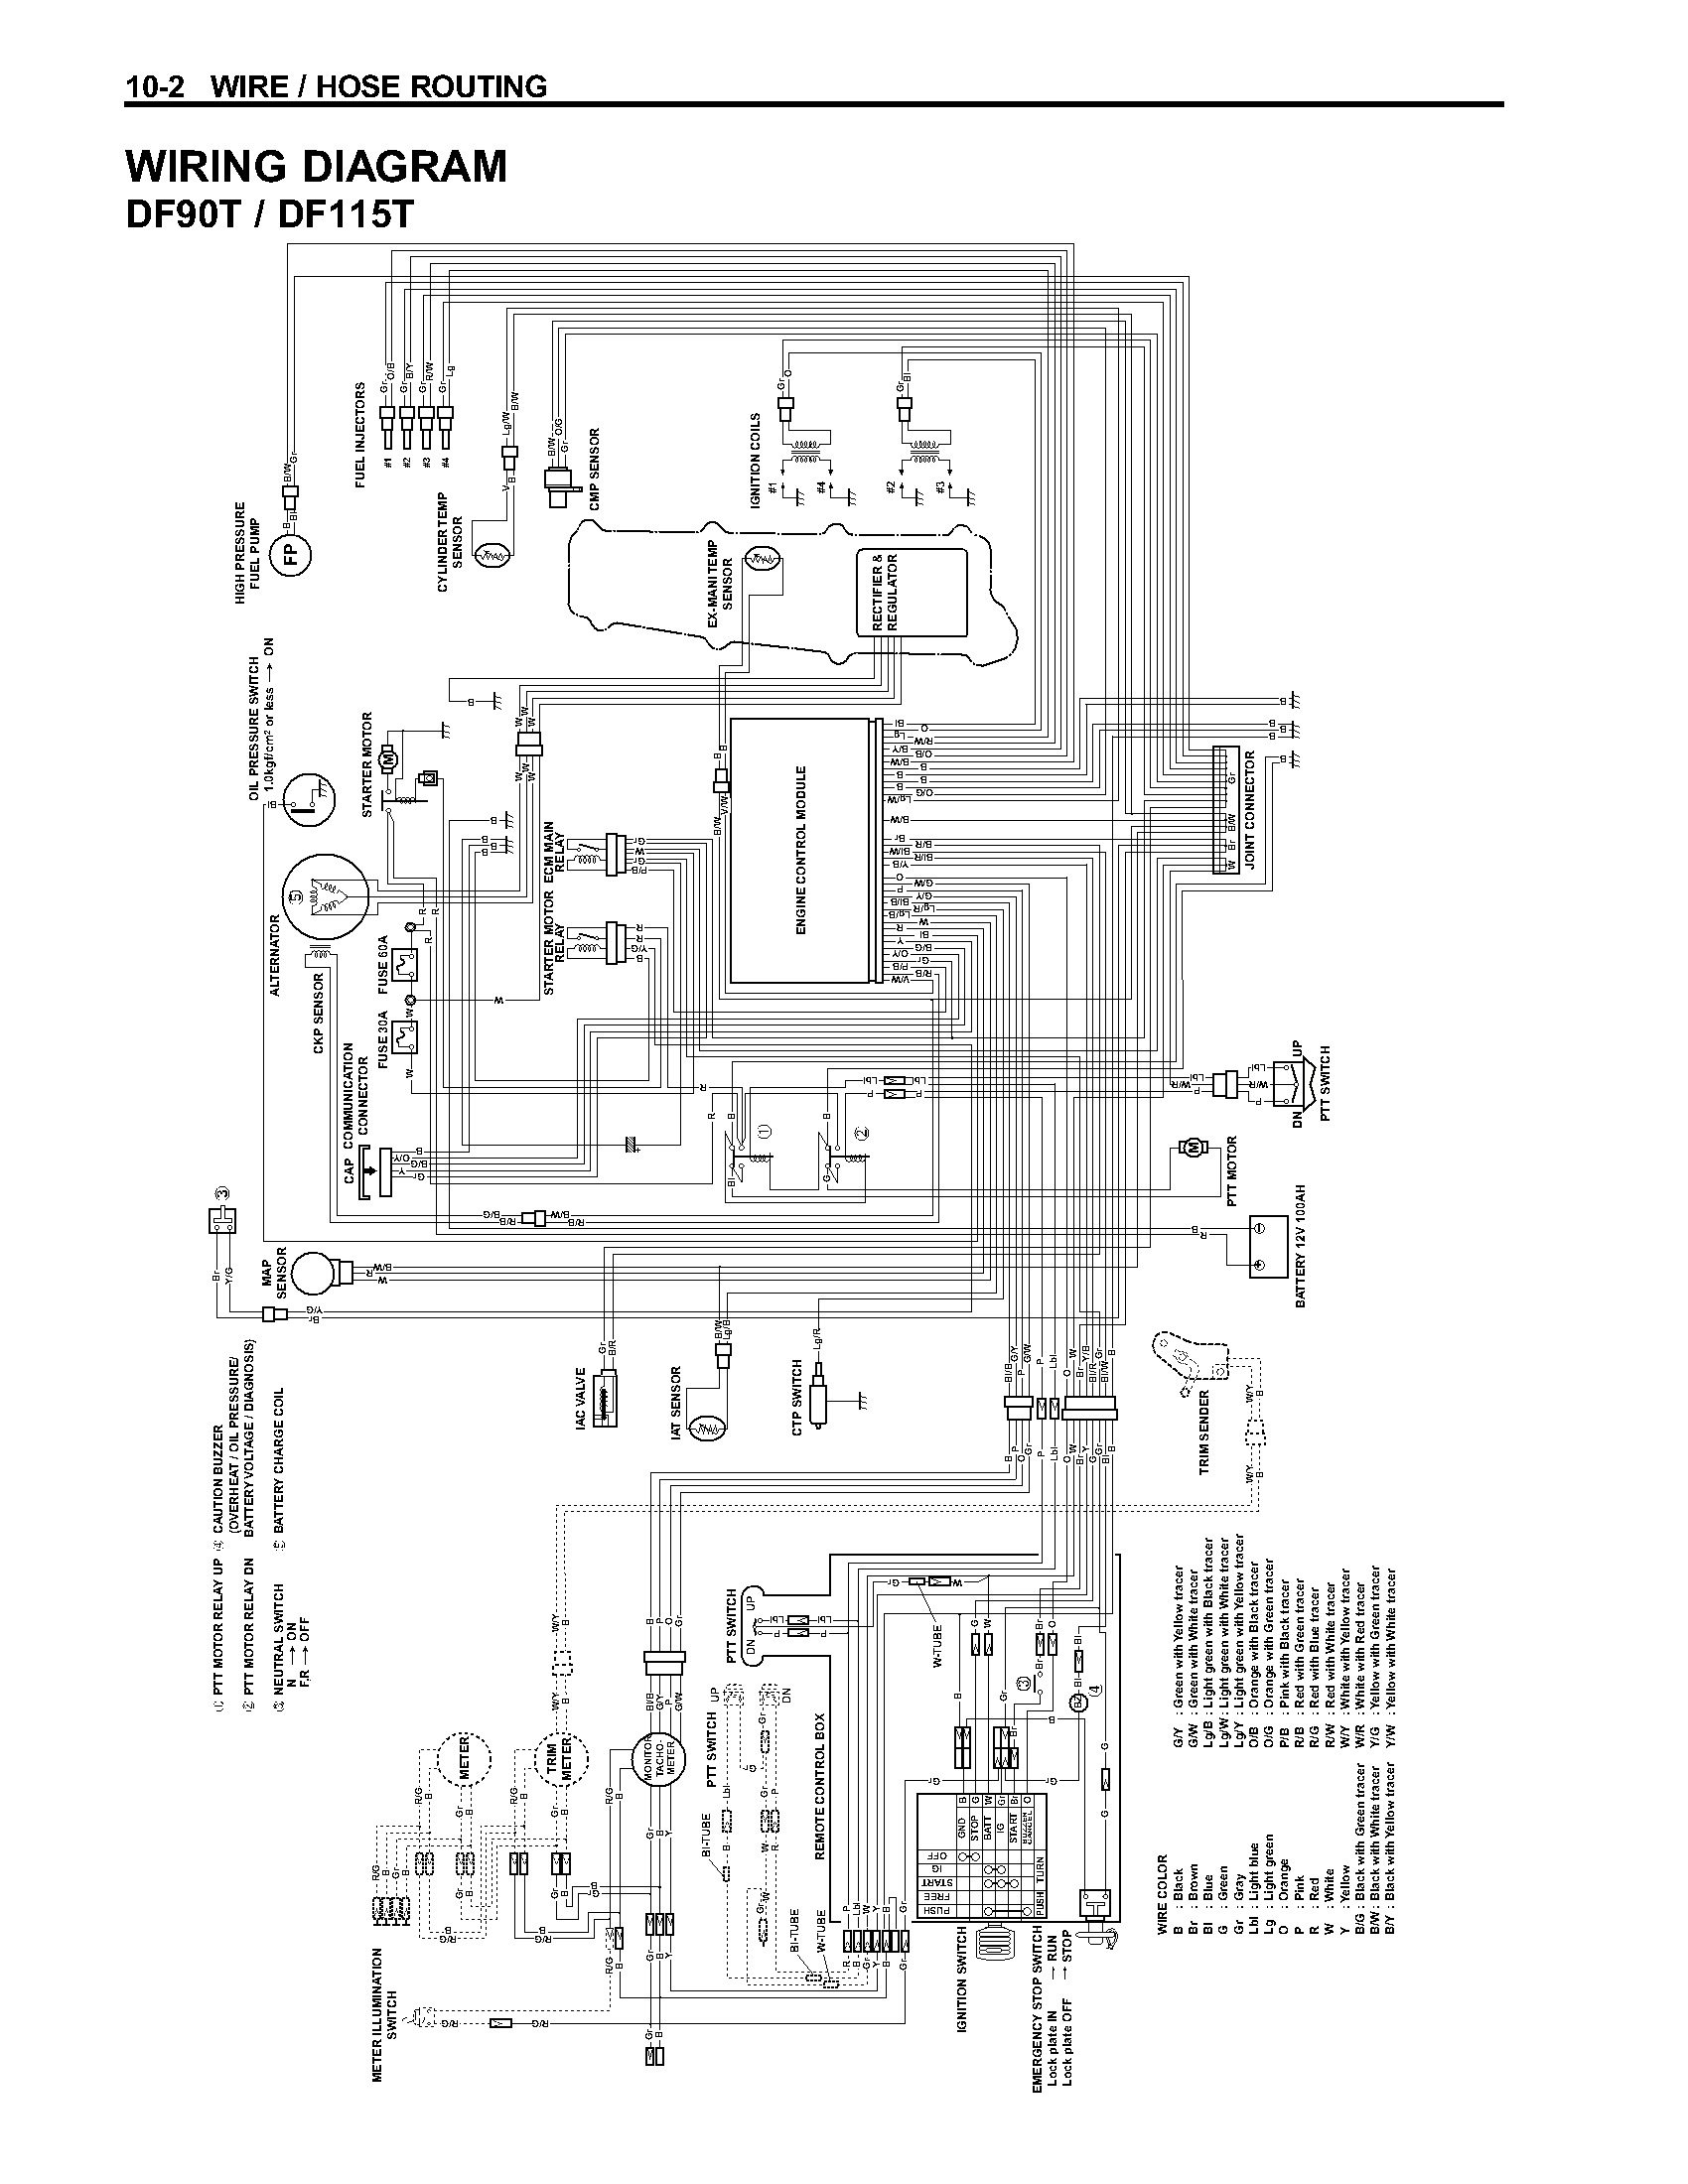 2012 09 03_154241_90diag yamaha 90 outboard wiring diagram 2005 readingrat net yamaha outboards wiring diagrams at fashall.co